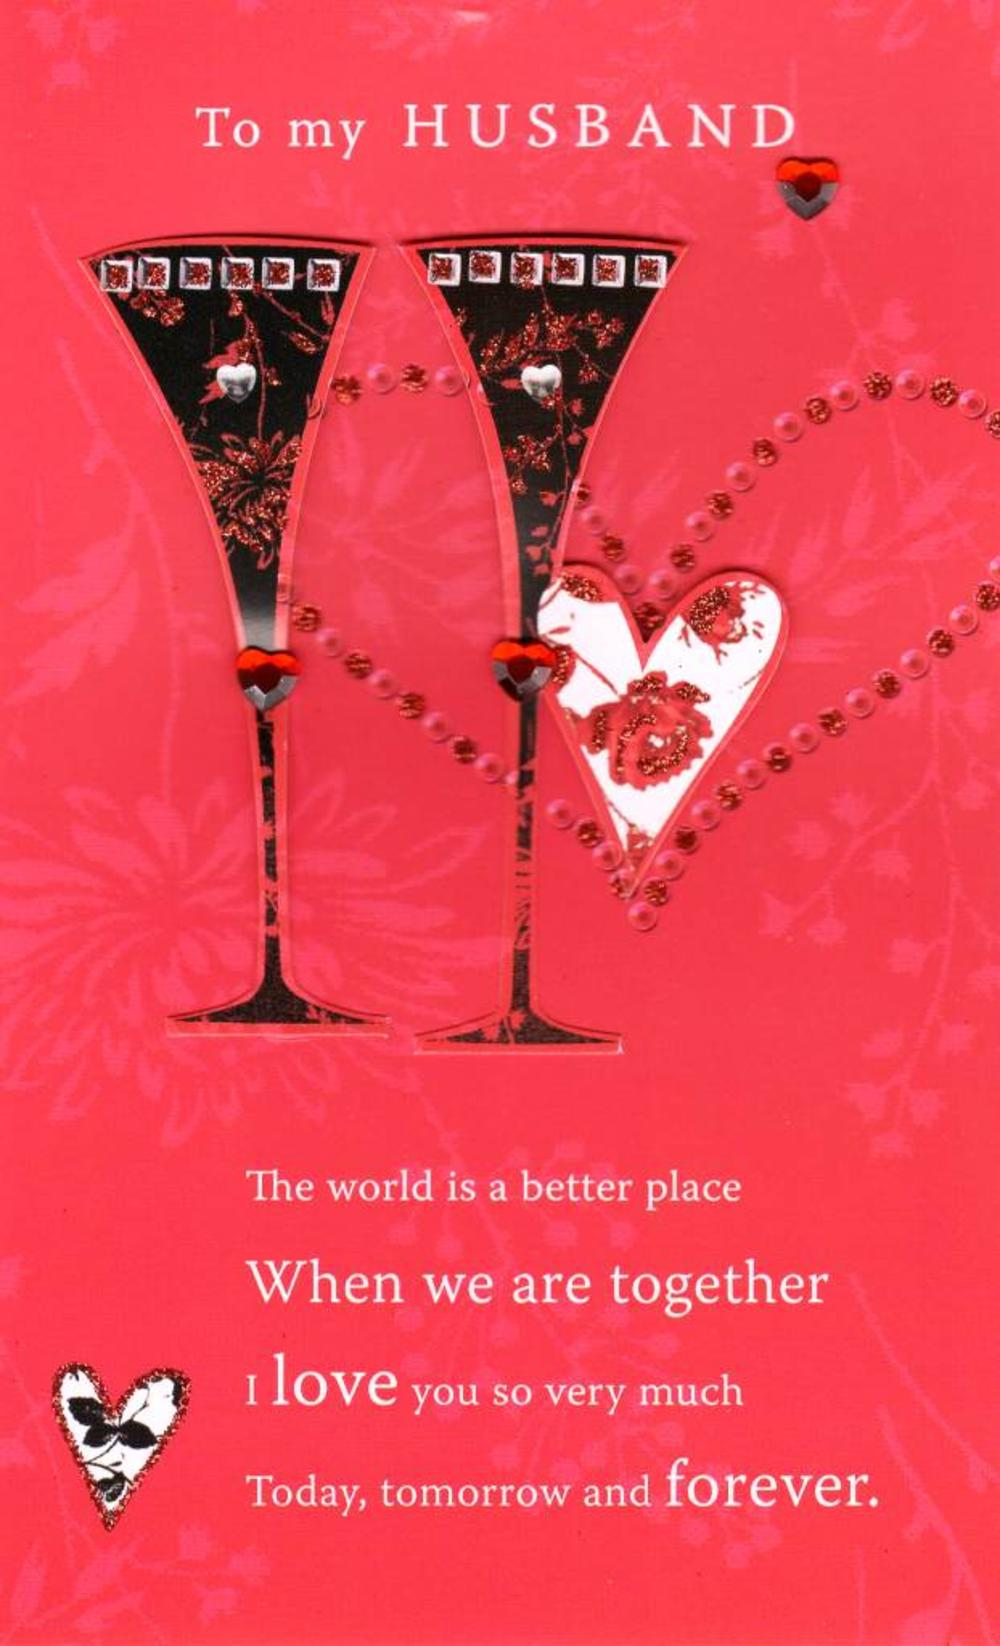 To my husband lovely valentine 39 s day card cards love kates for What to put on a valentines card